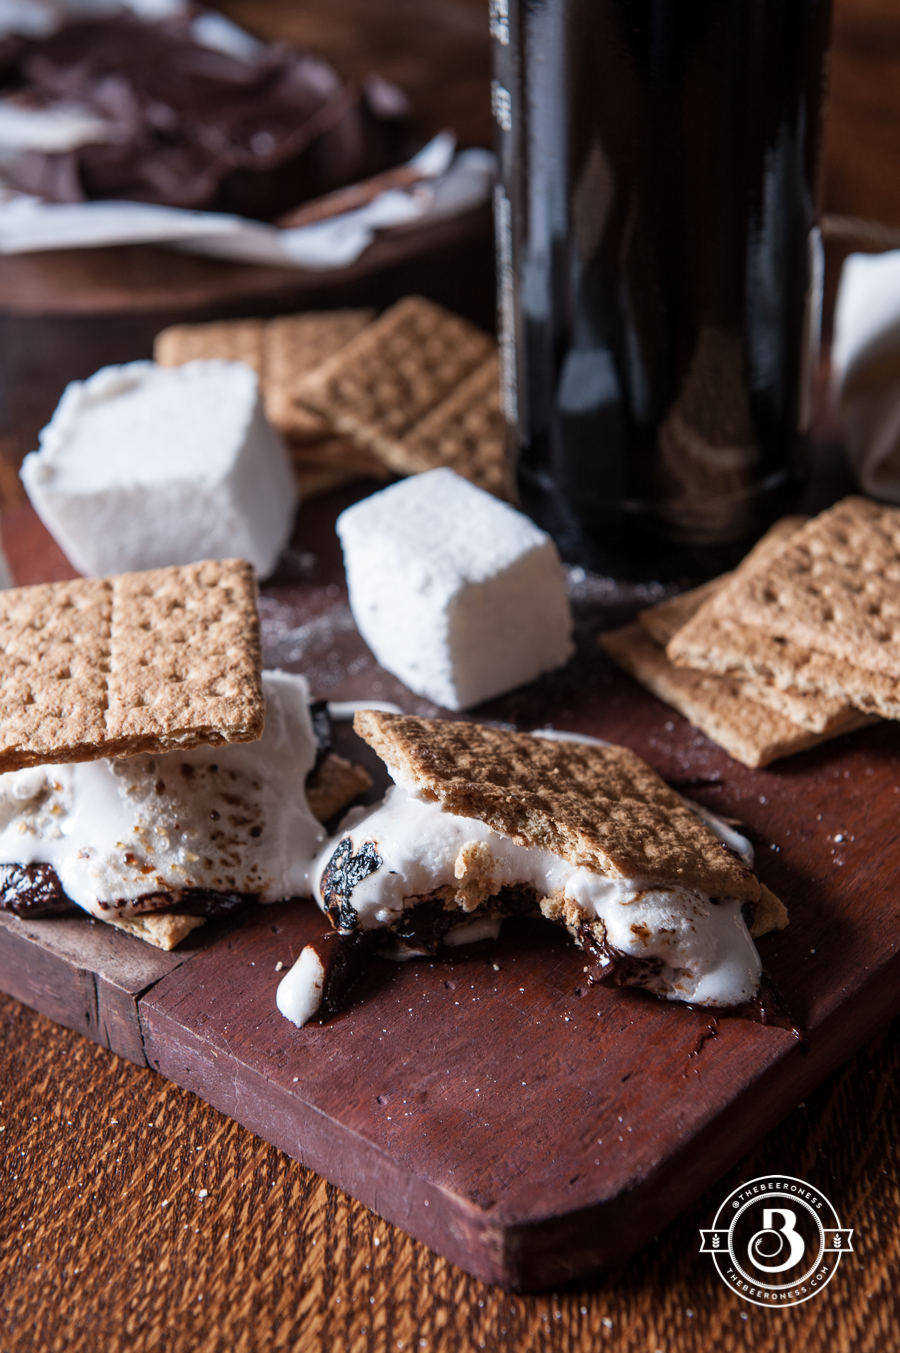 Beer S'Mores Stout Chocolate Bar and Belgian Ale Marshmallows4